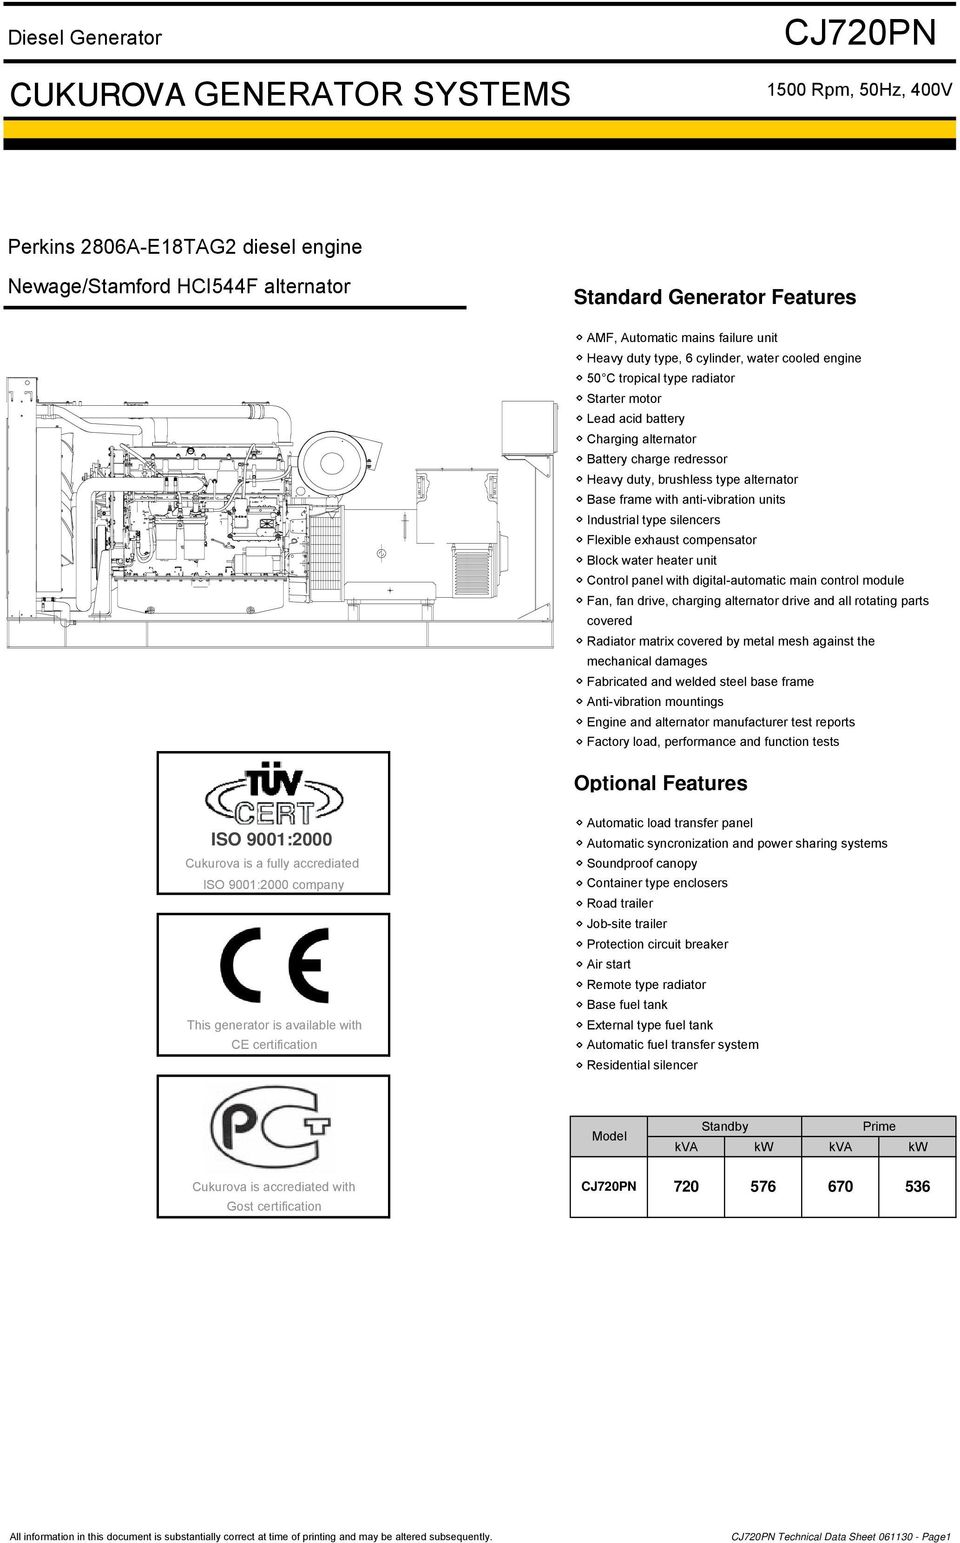 Isolation Transformer Wiring Diagram Onan Avr Simple Isolationtransformerwiring Auto Electrical Tranformer